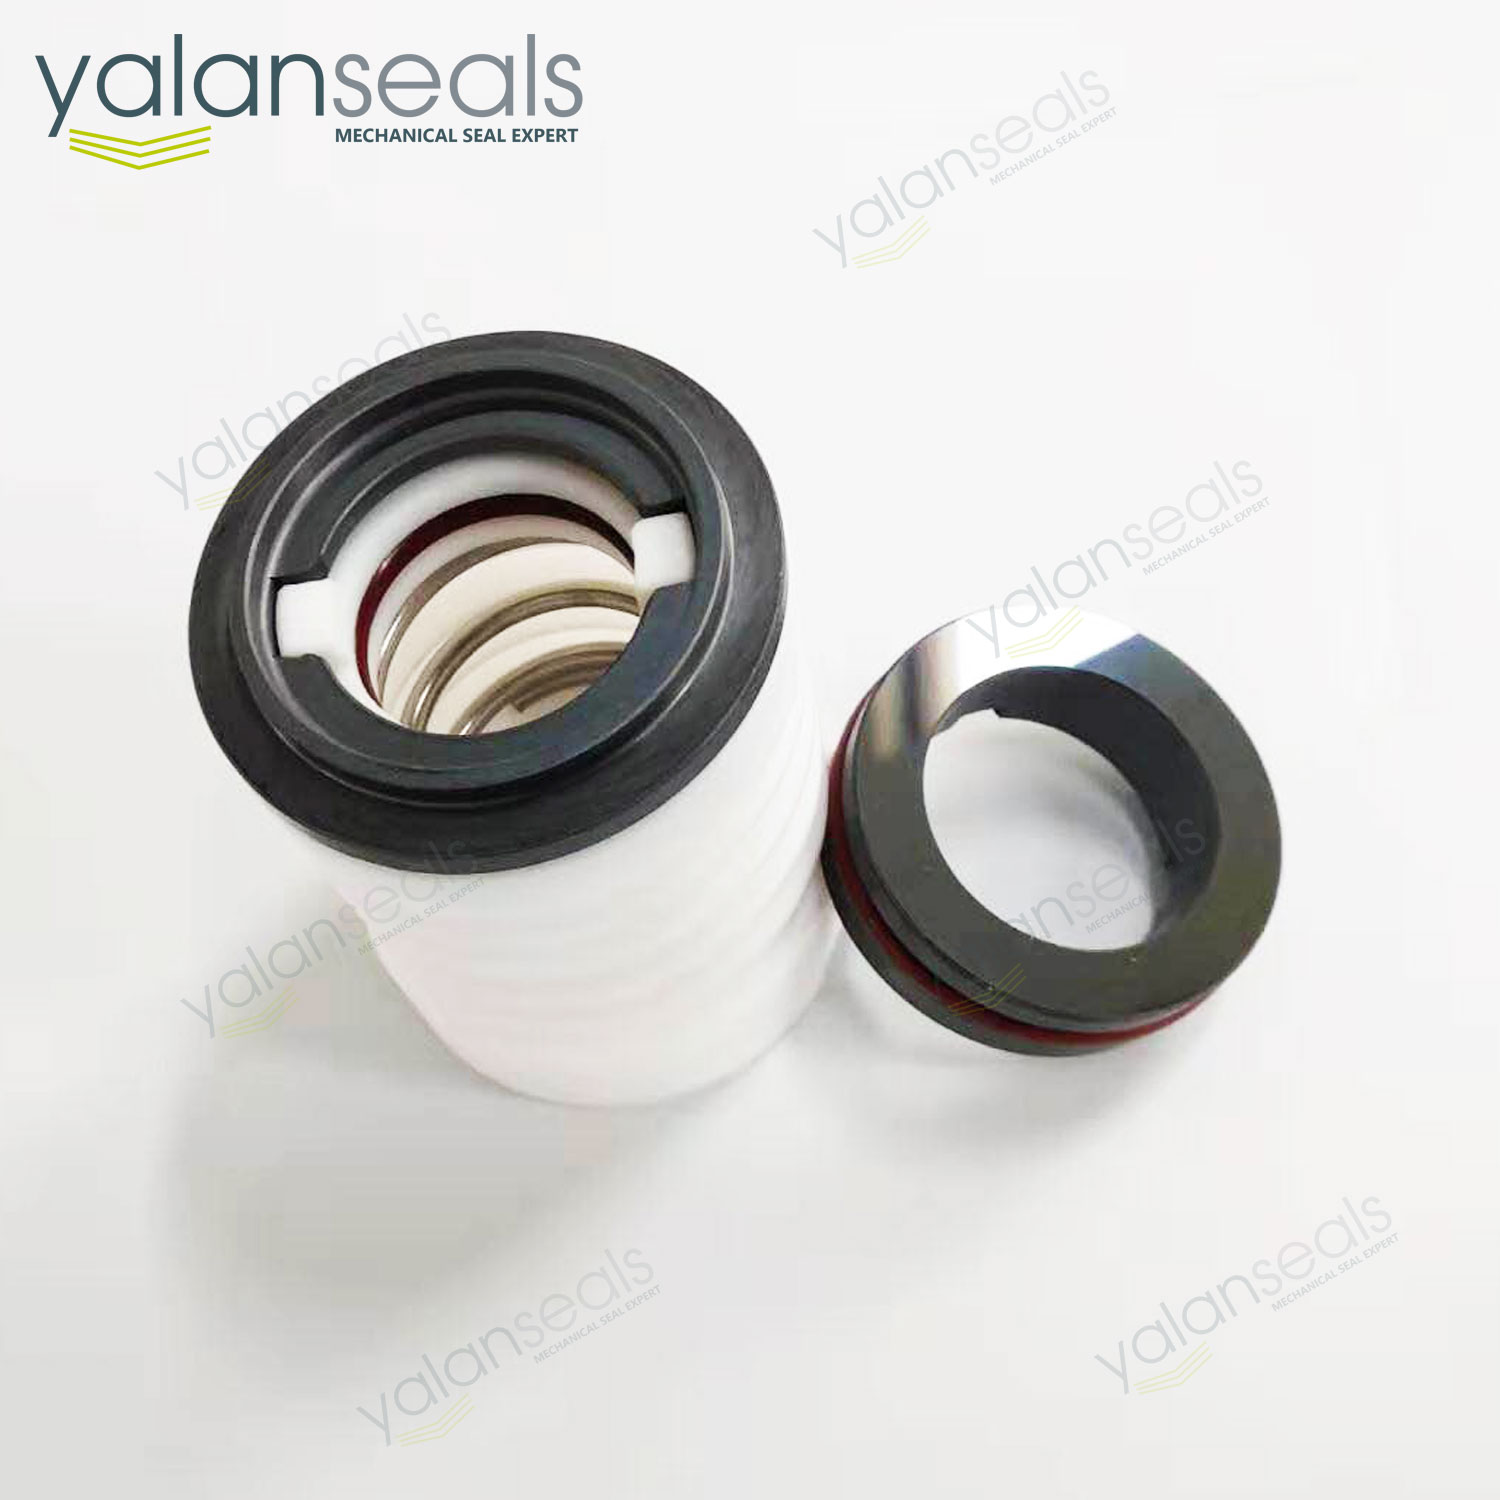 SD-25 Single Spring PTFE Bellow Mechanical Seal for Acid Pumps